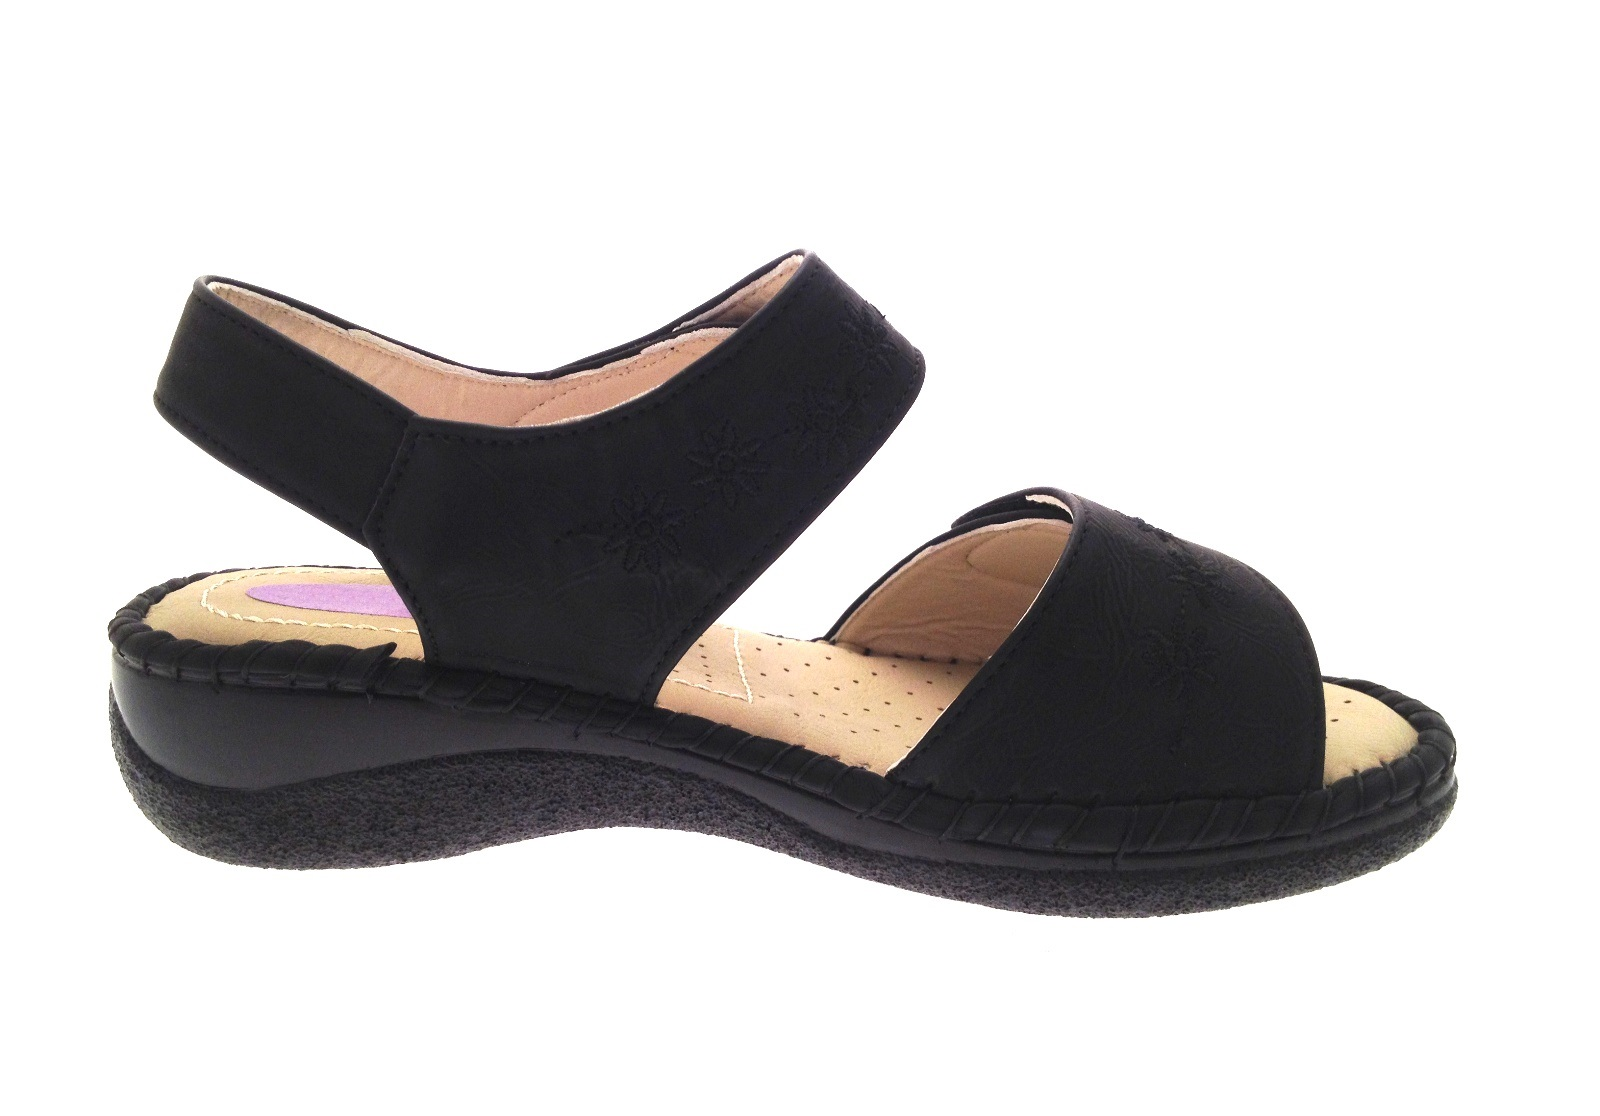 Womens Wide Flat Shoes Black